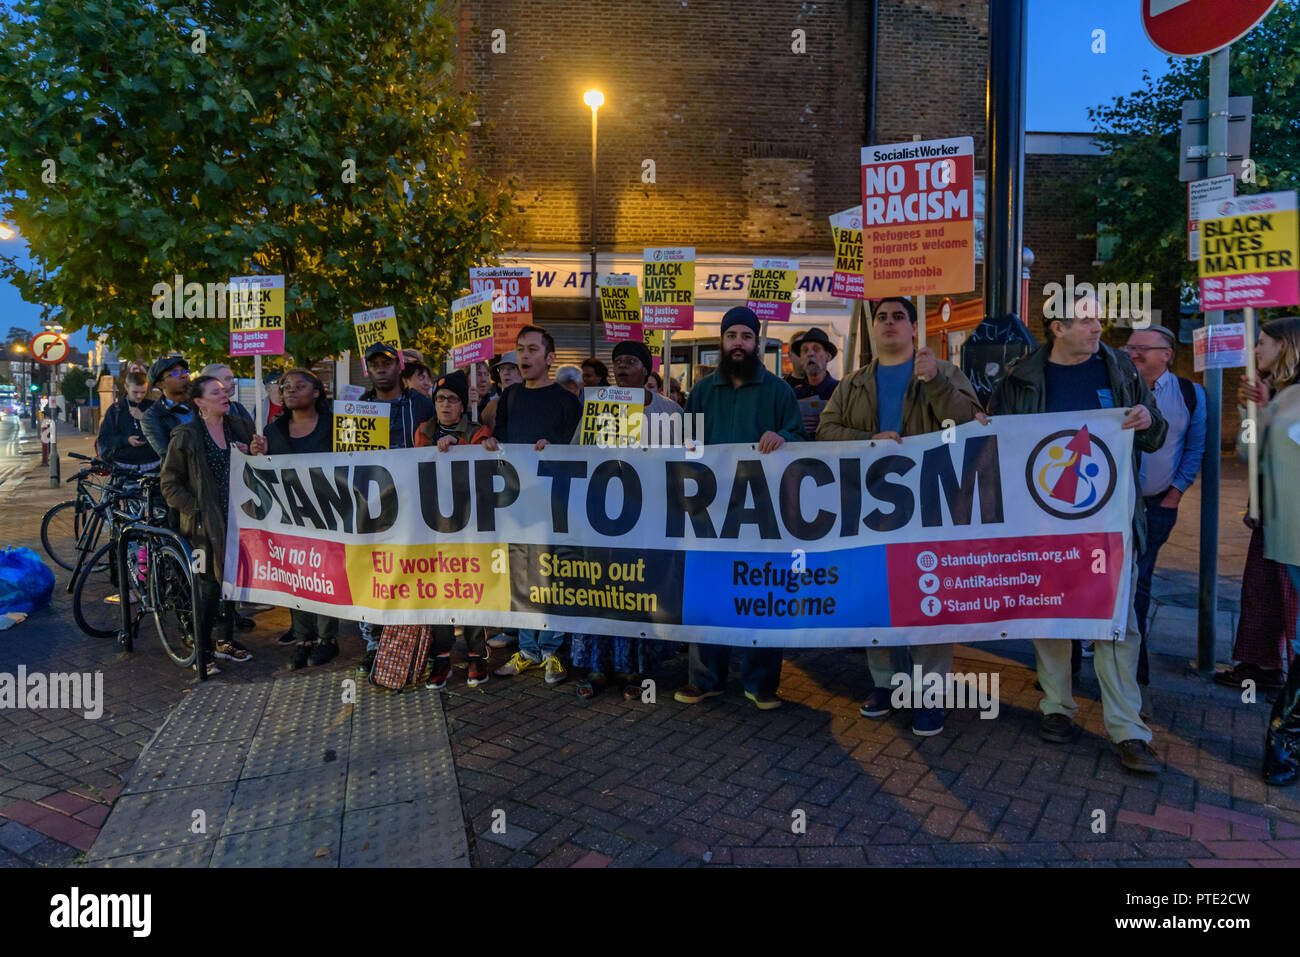 London, UK. October 9th 2018. People pose behind the Stand Up to Racism banner at the rally outside the New Atlas Cafe Restaurant where a young black man was attacked by police who used obviously unnecessary force when arresting him on suspicion of having been involved in a knife attack. He was assaulted by six officers, and was viciously kicked while officers struggled to handcuff him, andwhen he was well under control and held on the ground he was sprayed in the face with CS gas. Credit: Peter Marshall/Alamy Live News Stock Photo